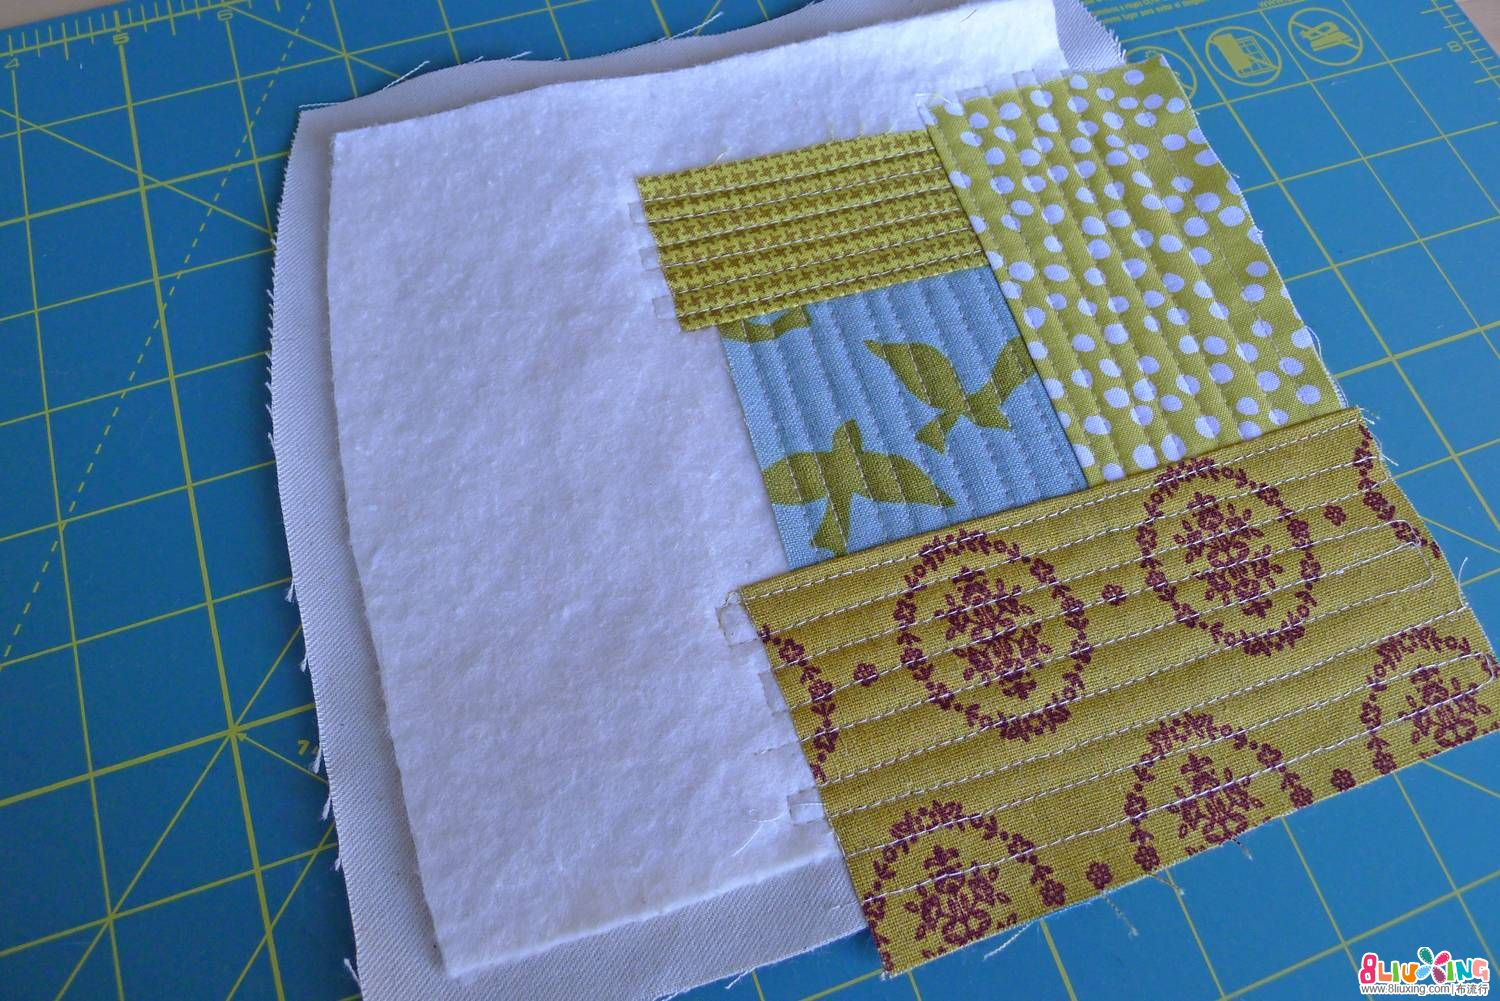 quilt_as_you_go (5).jpg